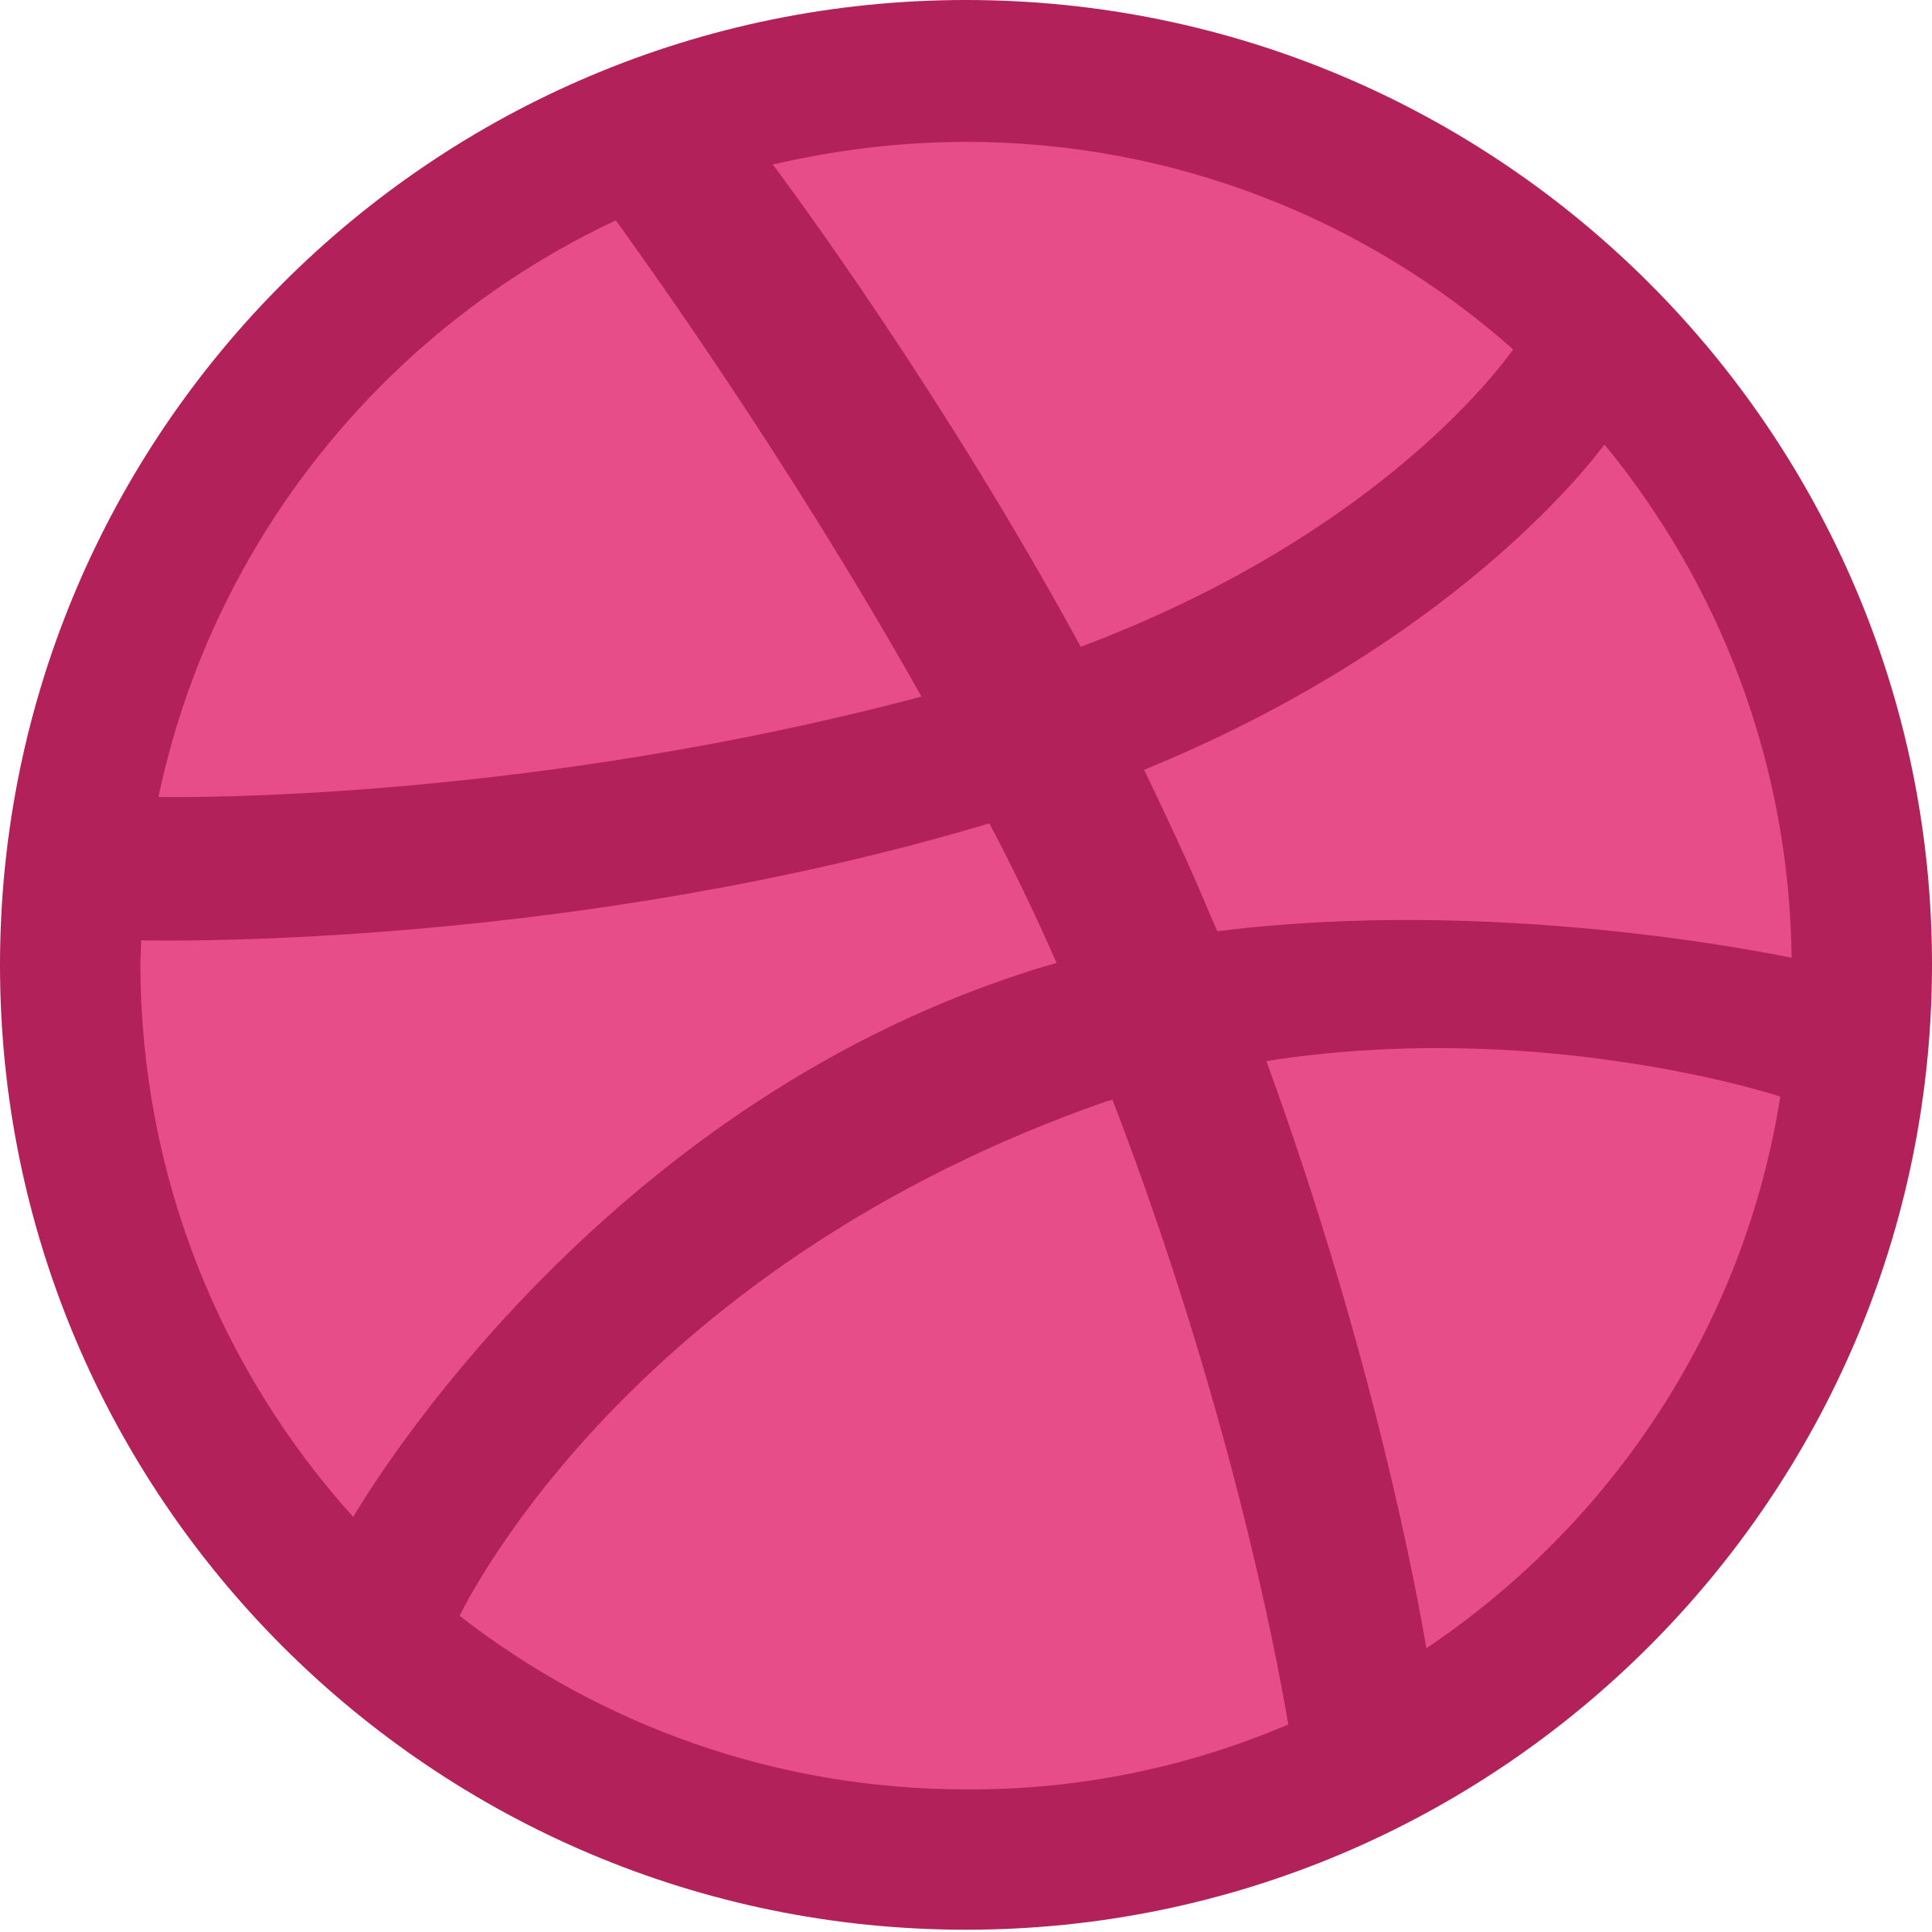 Putting my work on dribbble